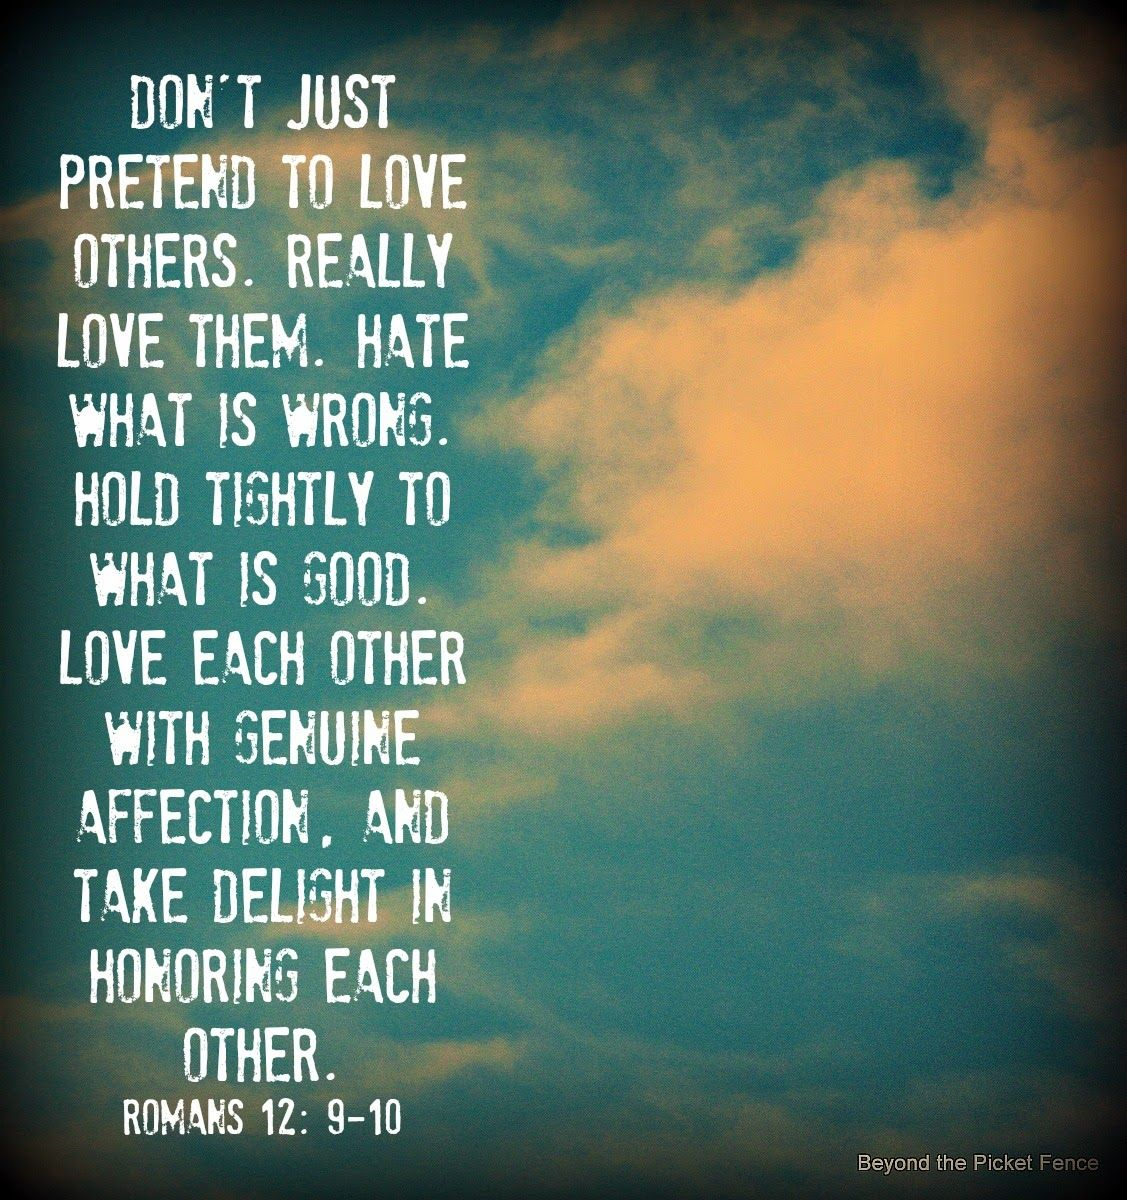 Bible Verse Loving Others Http Bec Beyondthepicketfence Blo